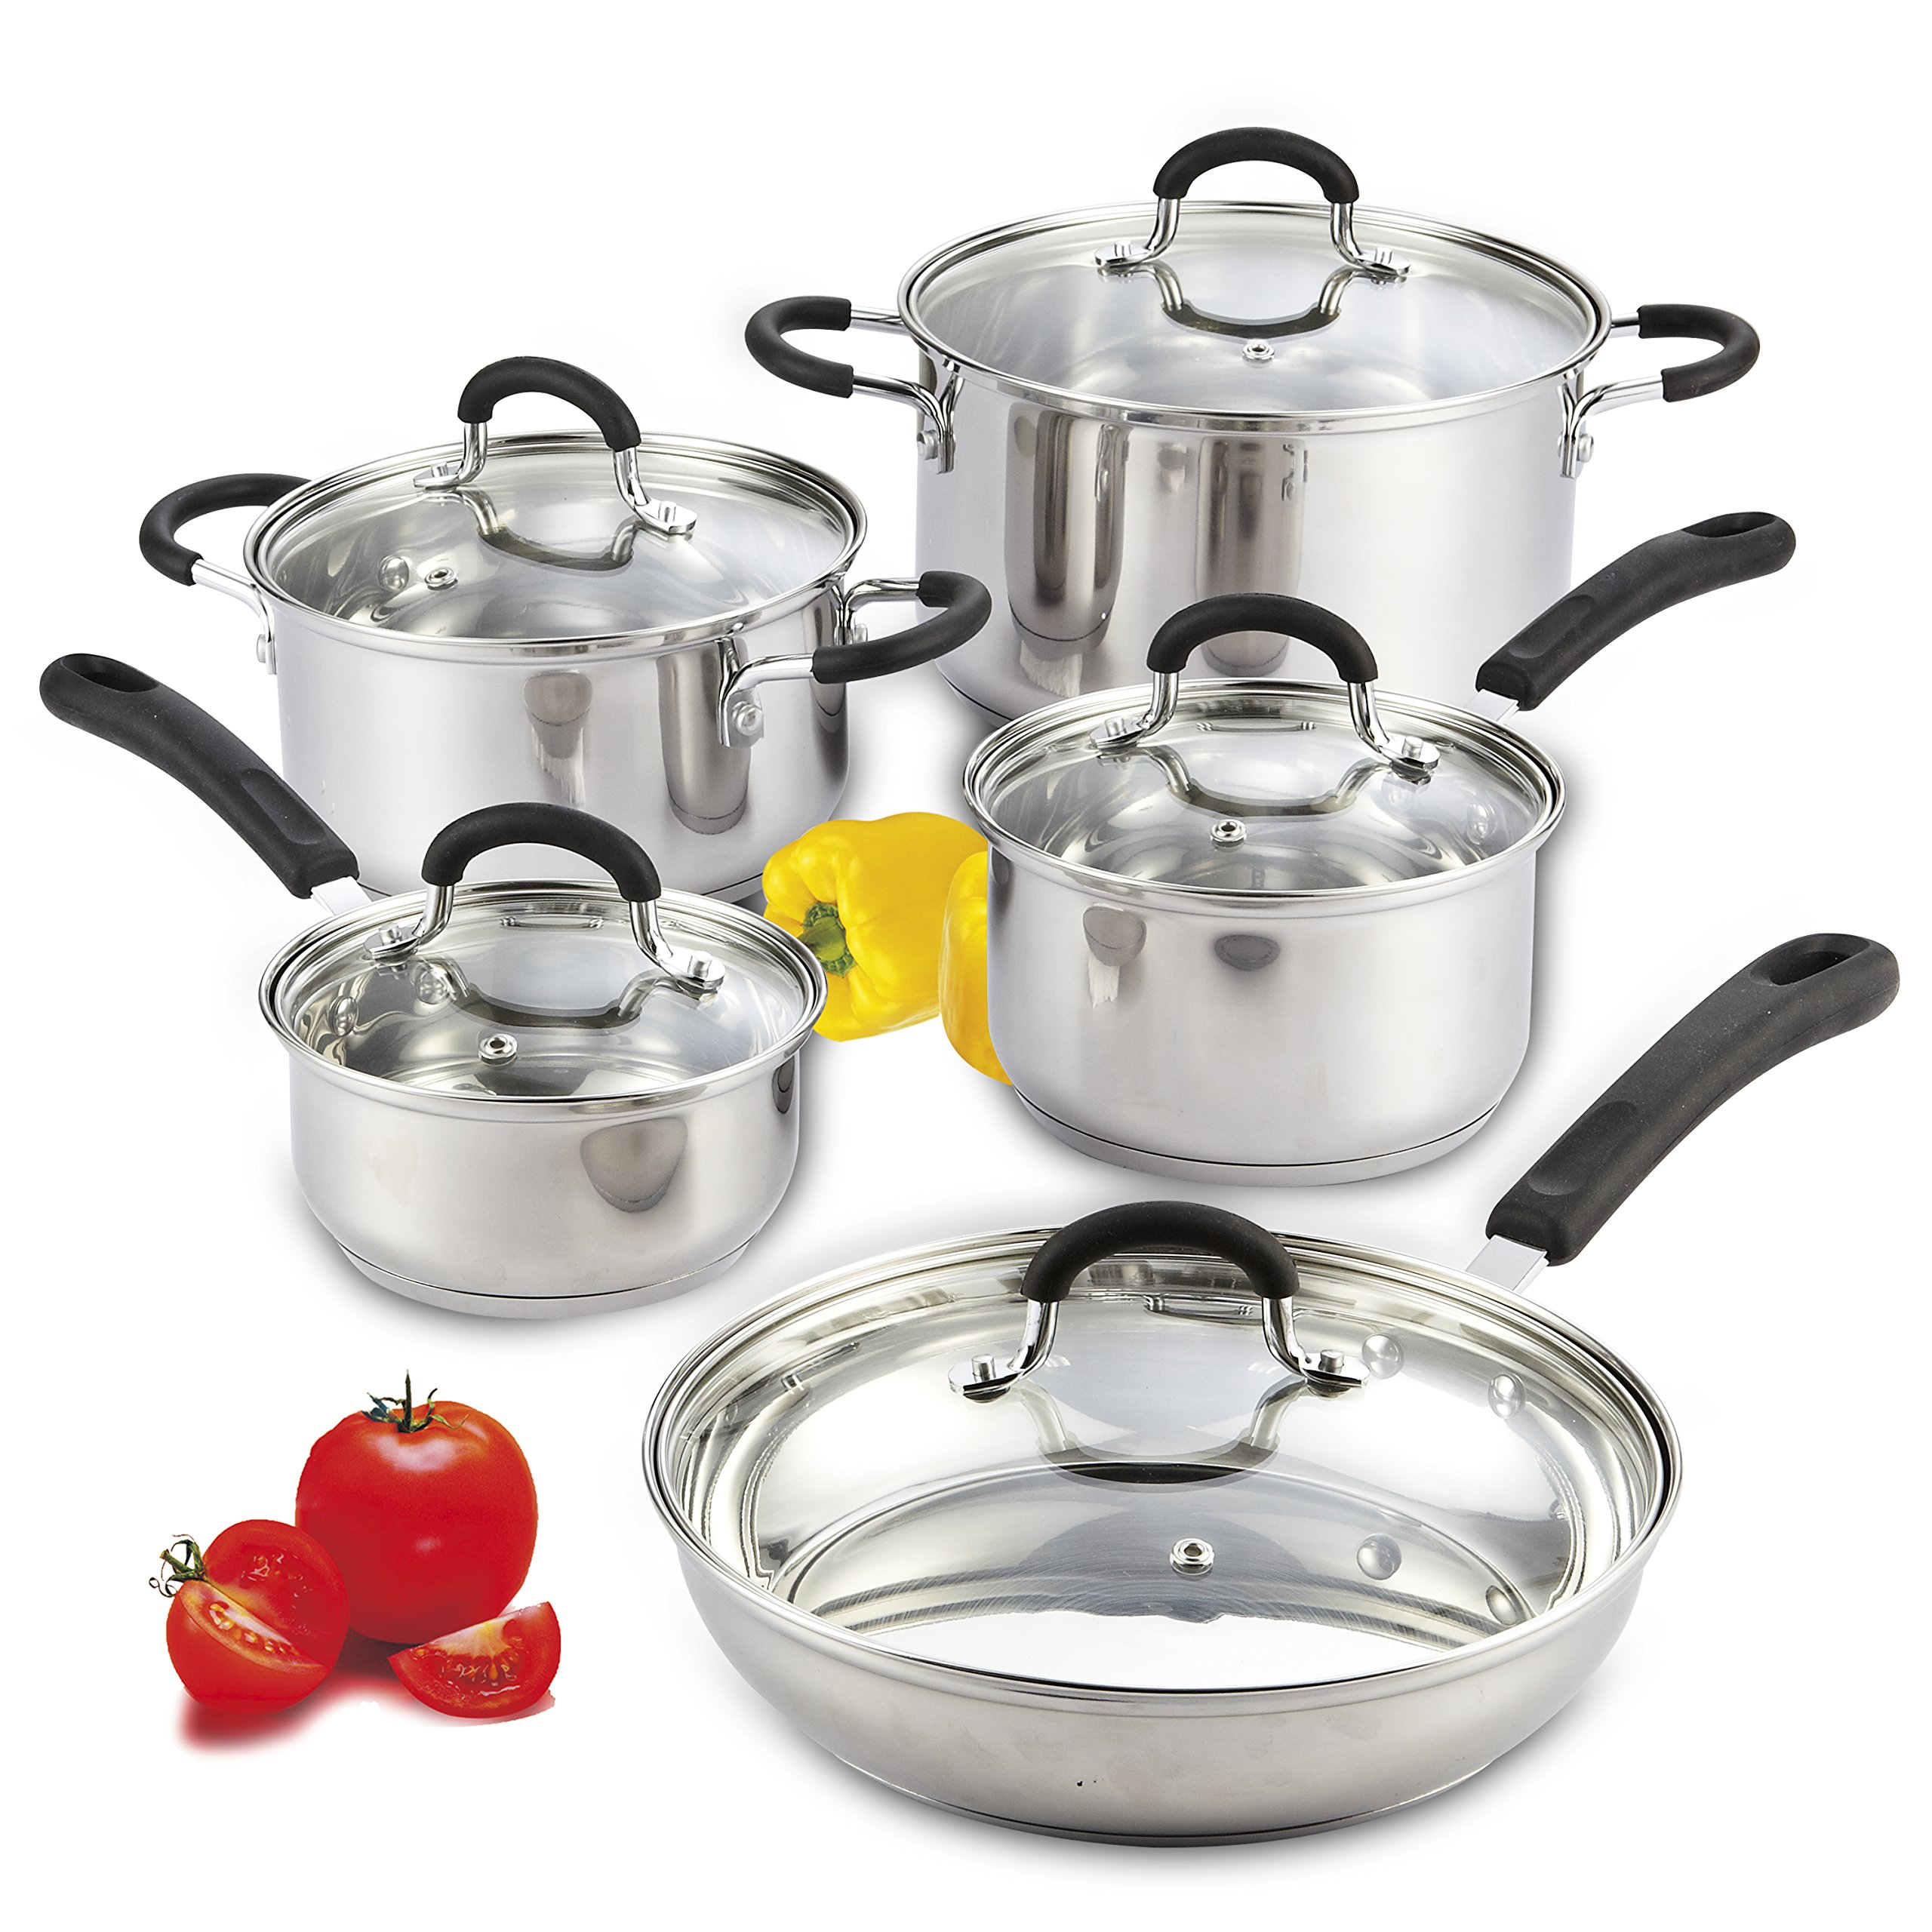 Cook N Home 10-Piece Stainless Steel Cookware Set by Cook N Home